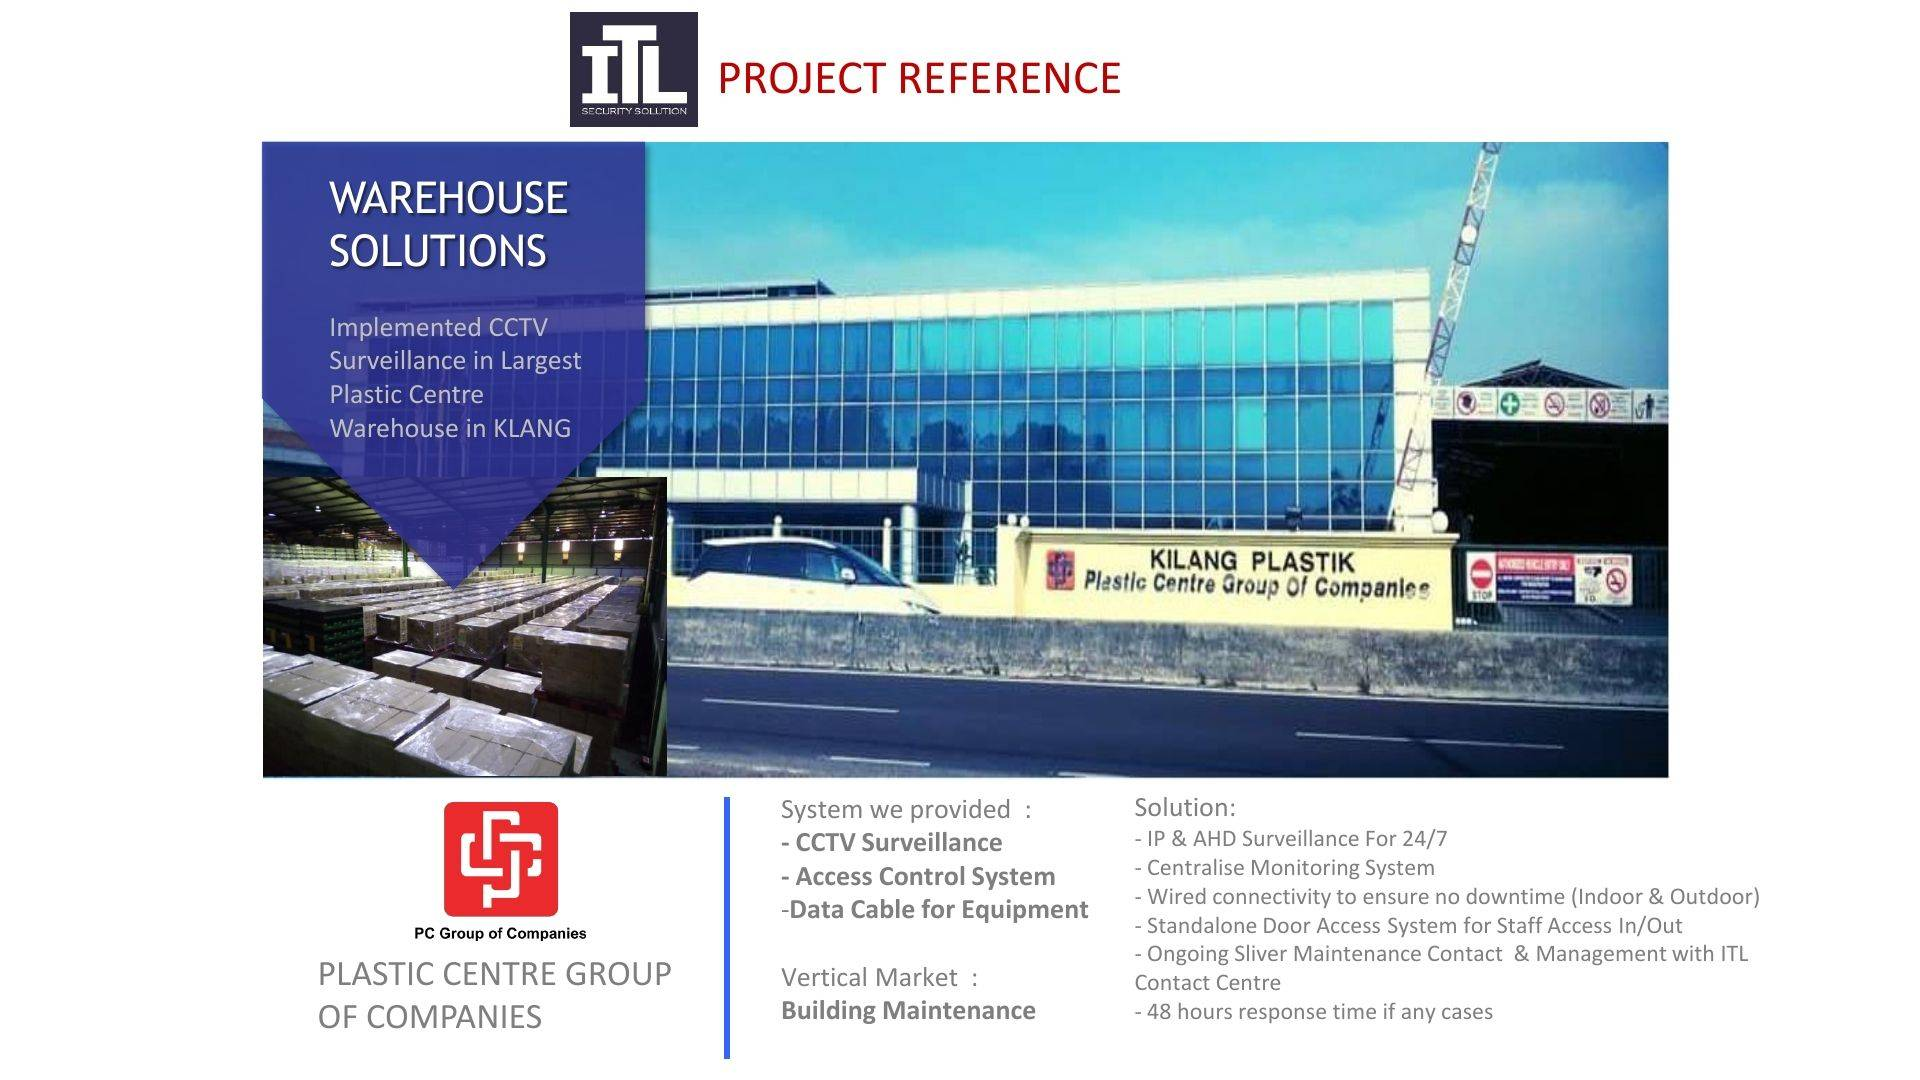 Plastic Centre Group of Companies